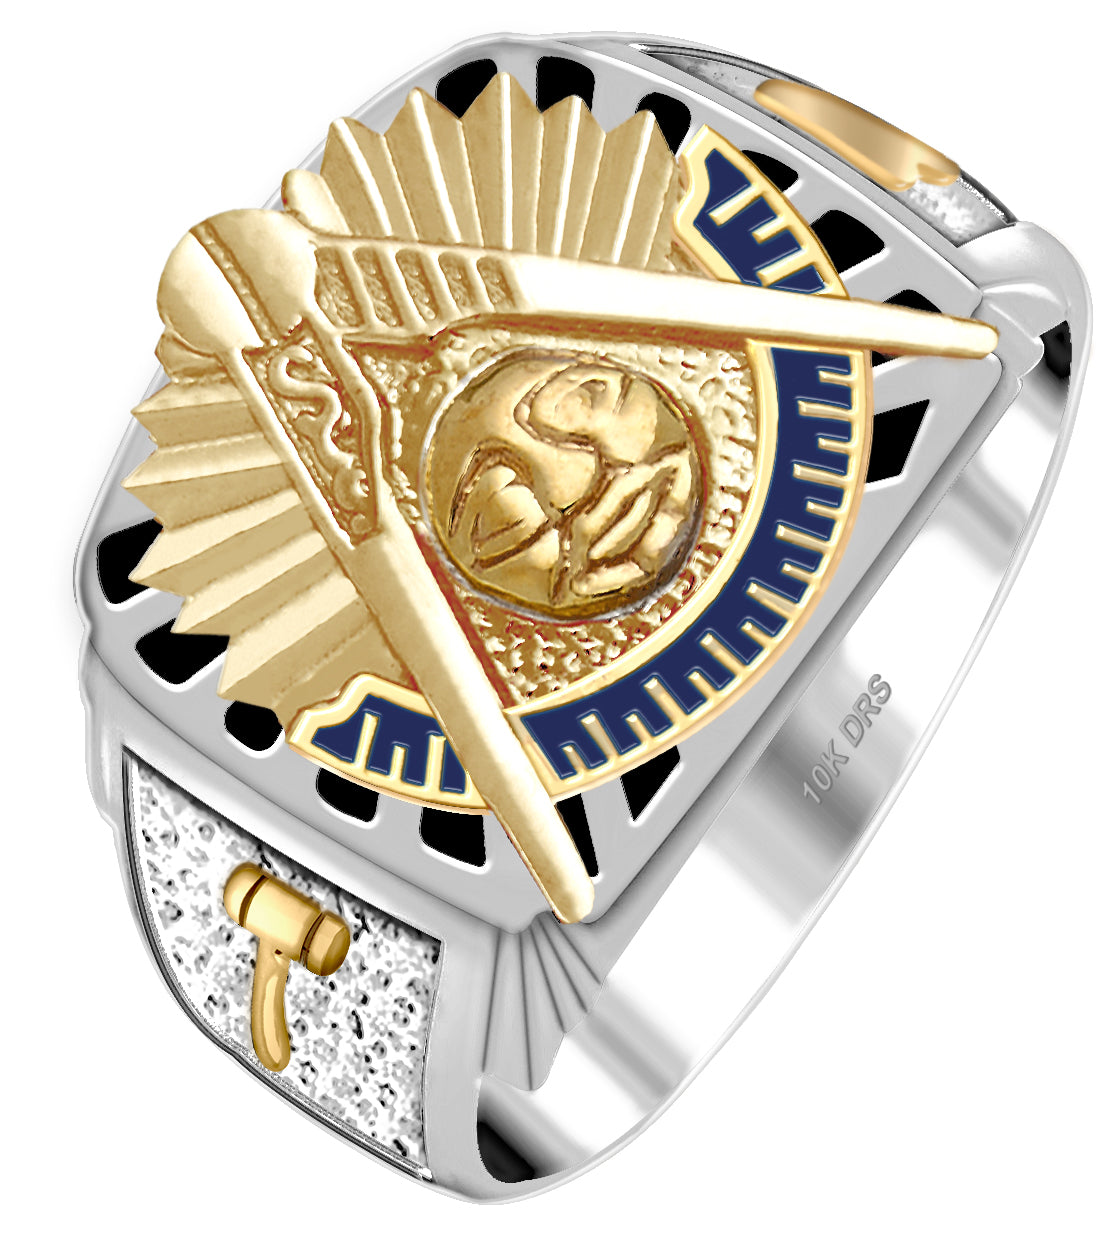 Masonic Ring With 14k or 10k Purity - White